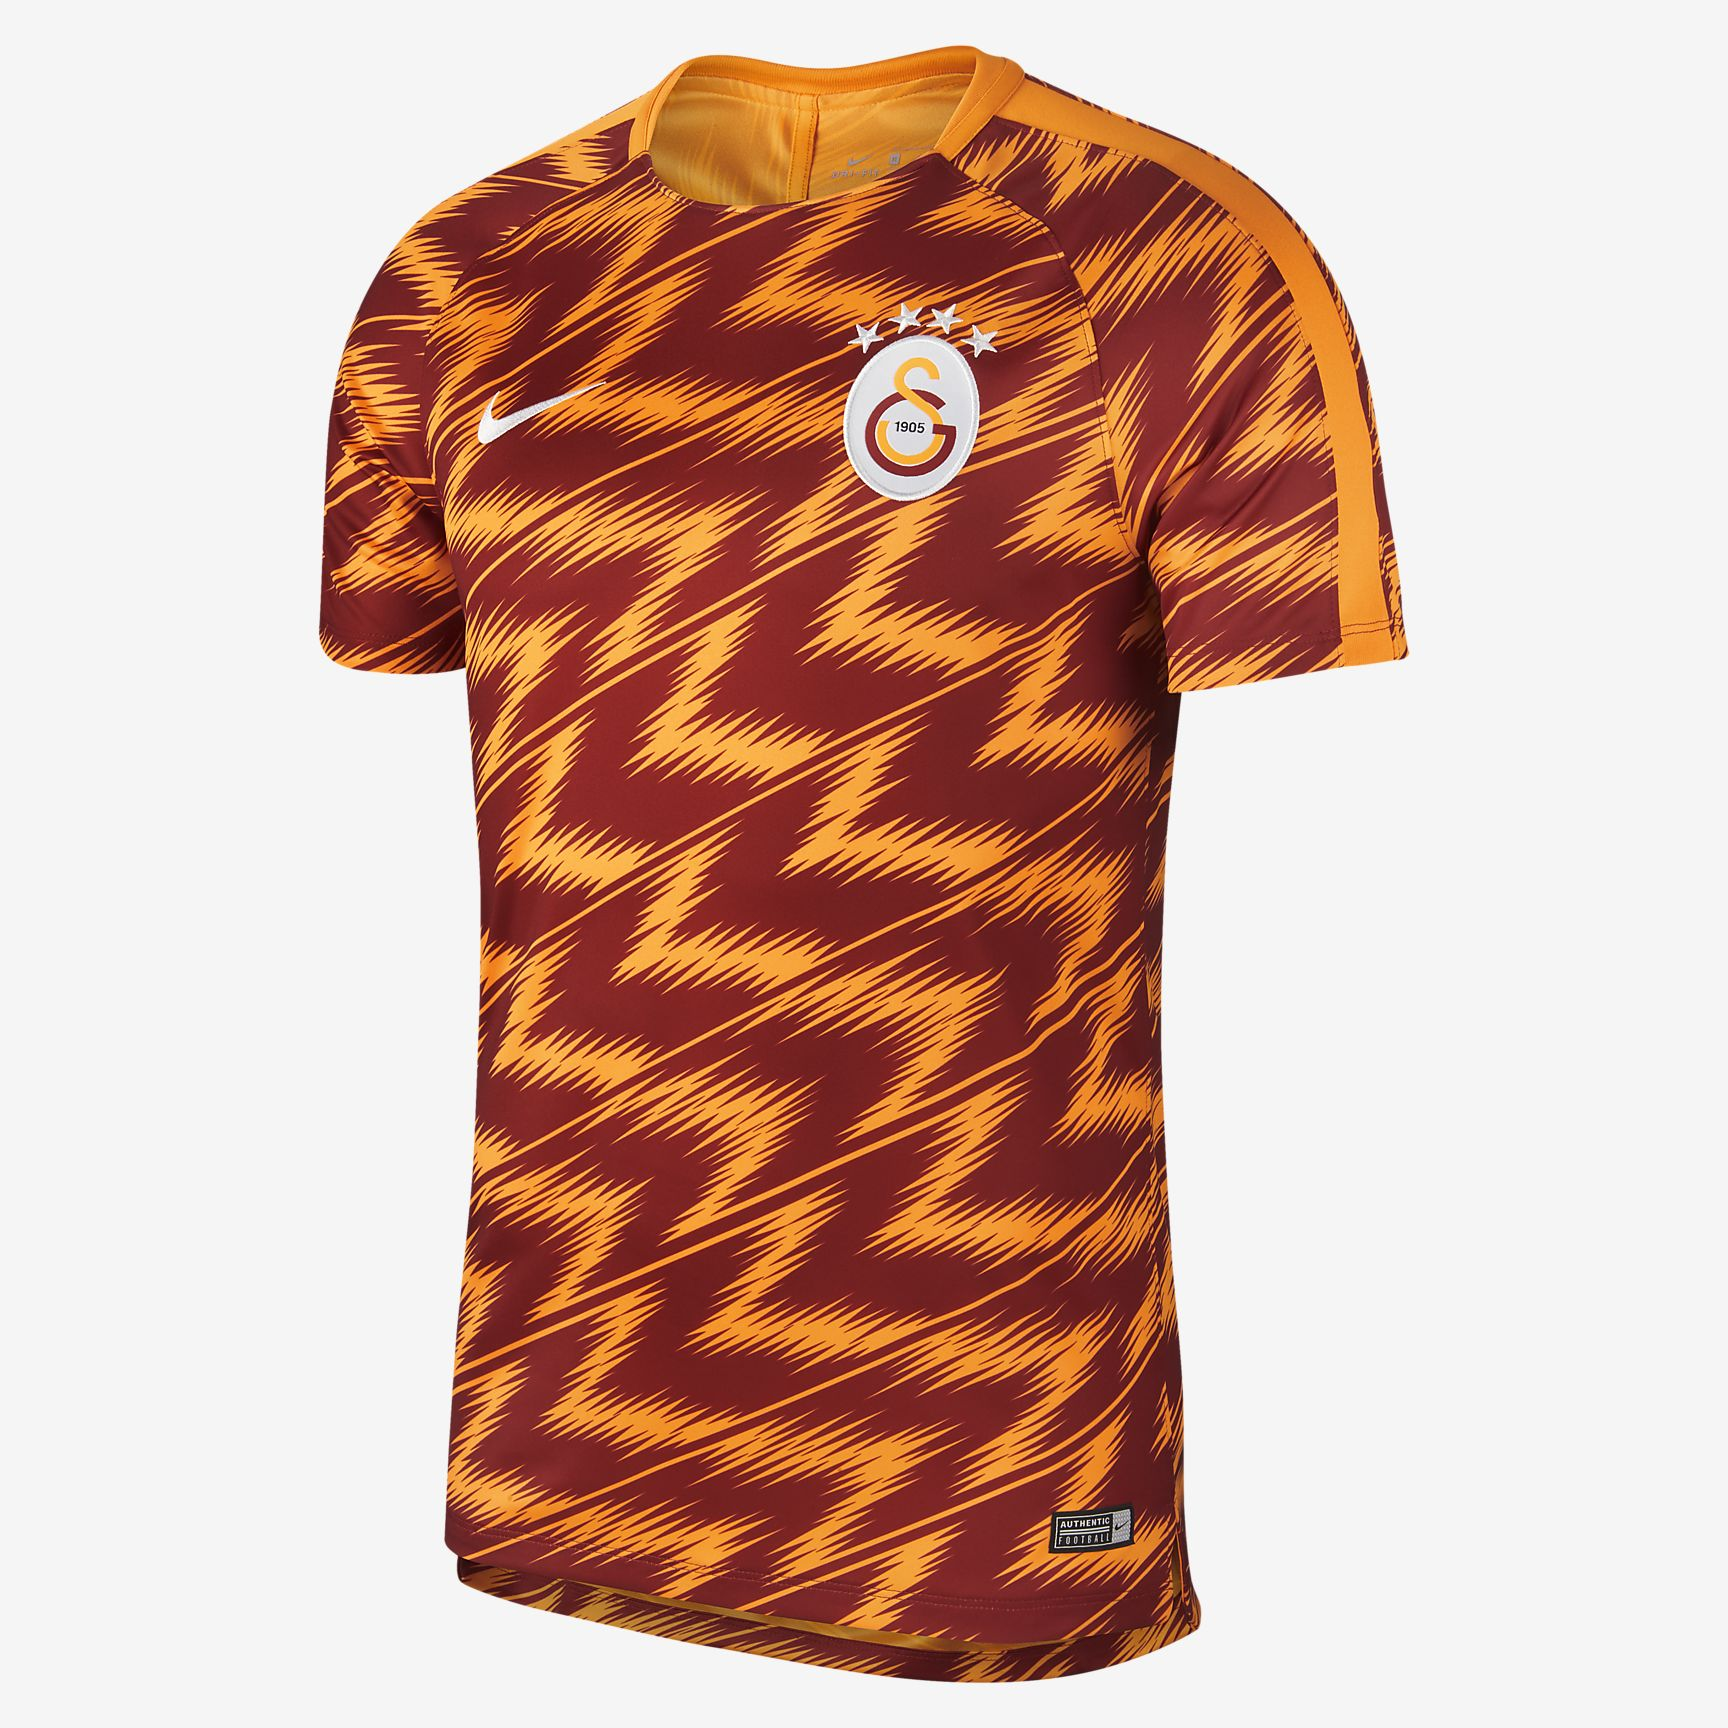 https://c.static-nike.com/a/images/t_PDP_1728_v1/f_auto/ydjkvx1lcxkypkw1onrz/galatasaray-sk-dri-fit-squad-football-top-j4kxf9.jpg